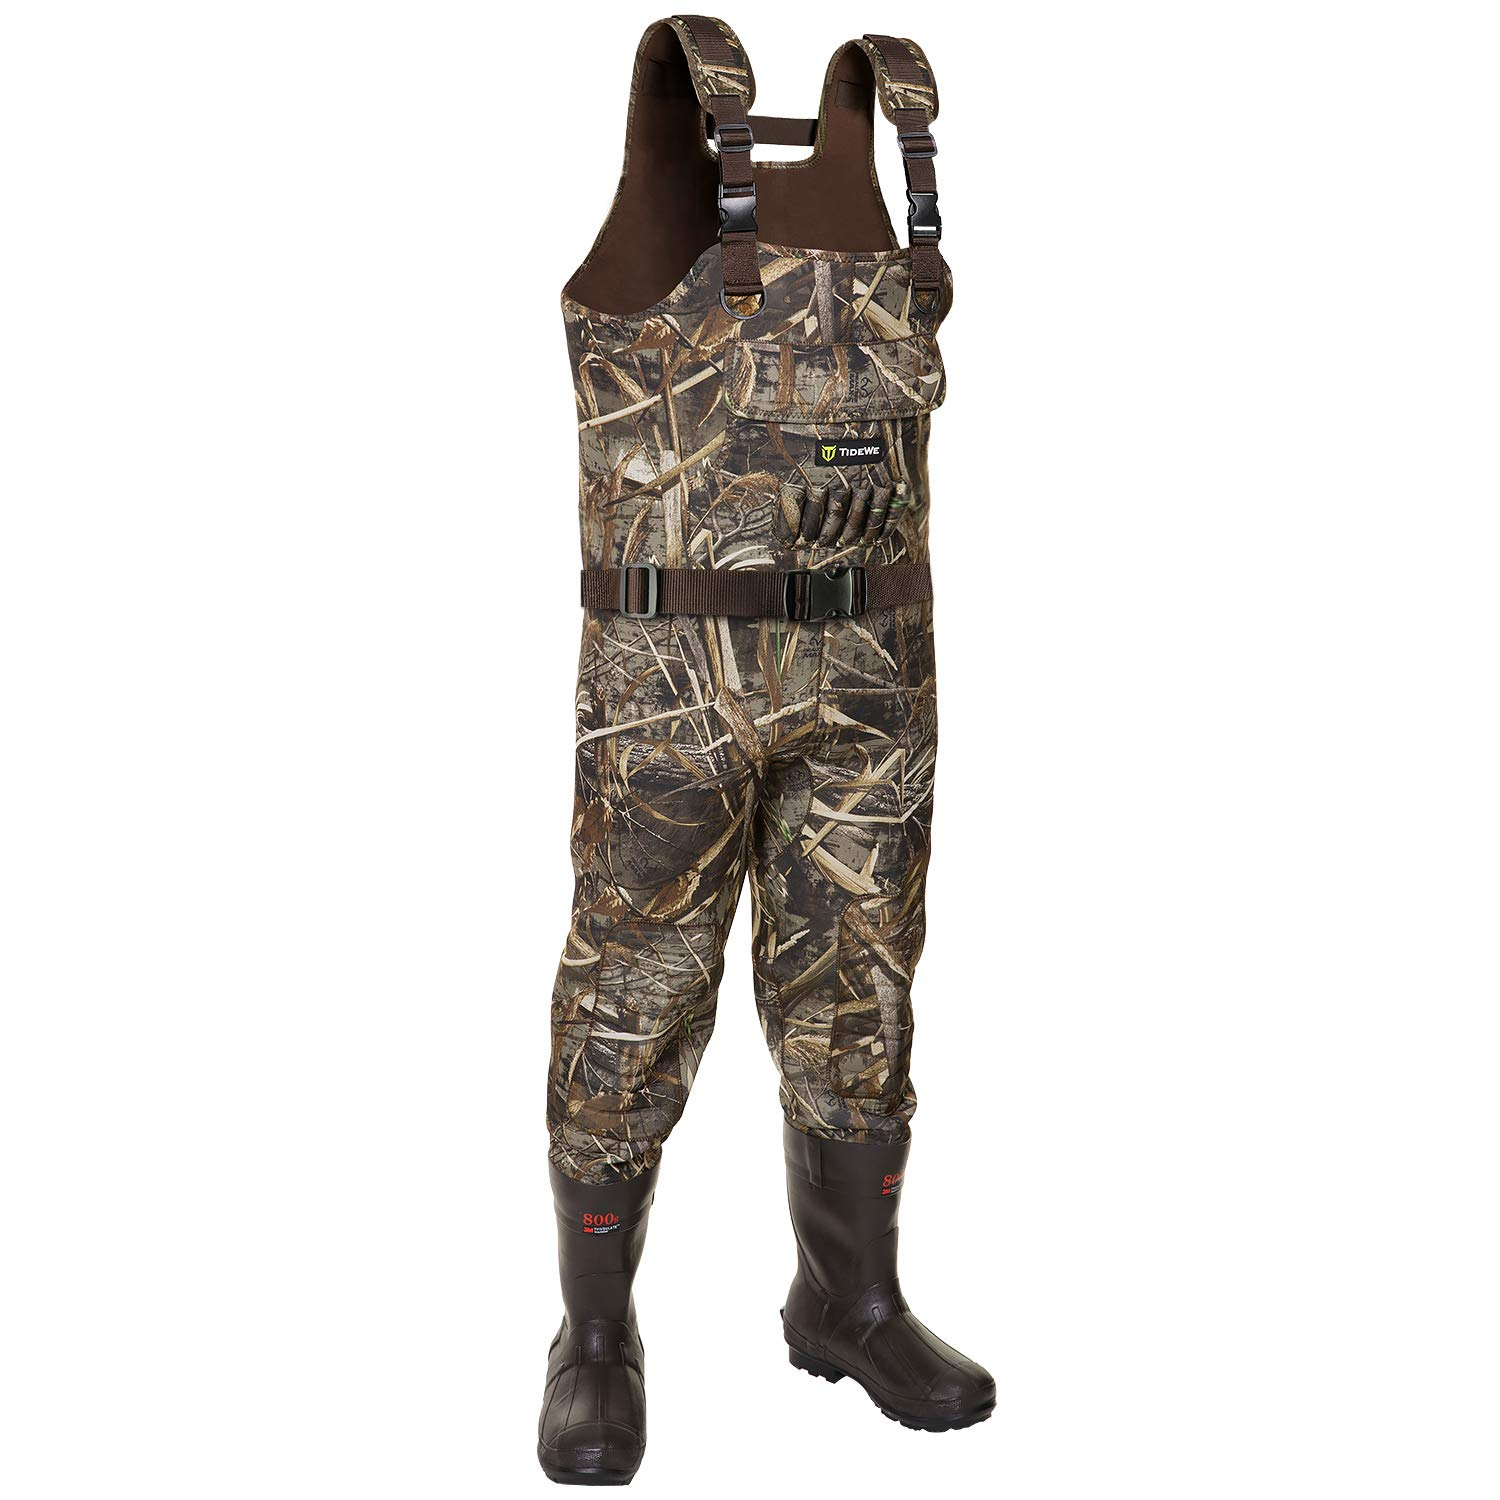 TideWe Chest Wader, Camo Hunting Wader for Men, Waterproof Cleated Neoprene Bootfoot Wader, Insulated Hunting & Fishing Wader Realtree MAX5 Camo (Insulation 800G Size 10) by TideWe